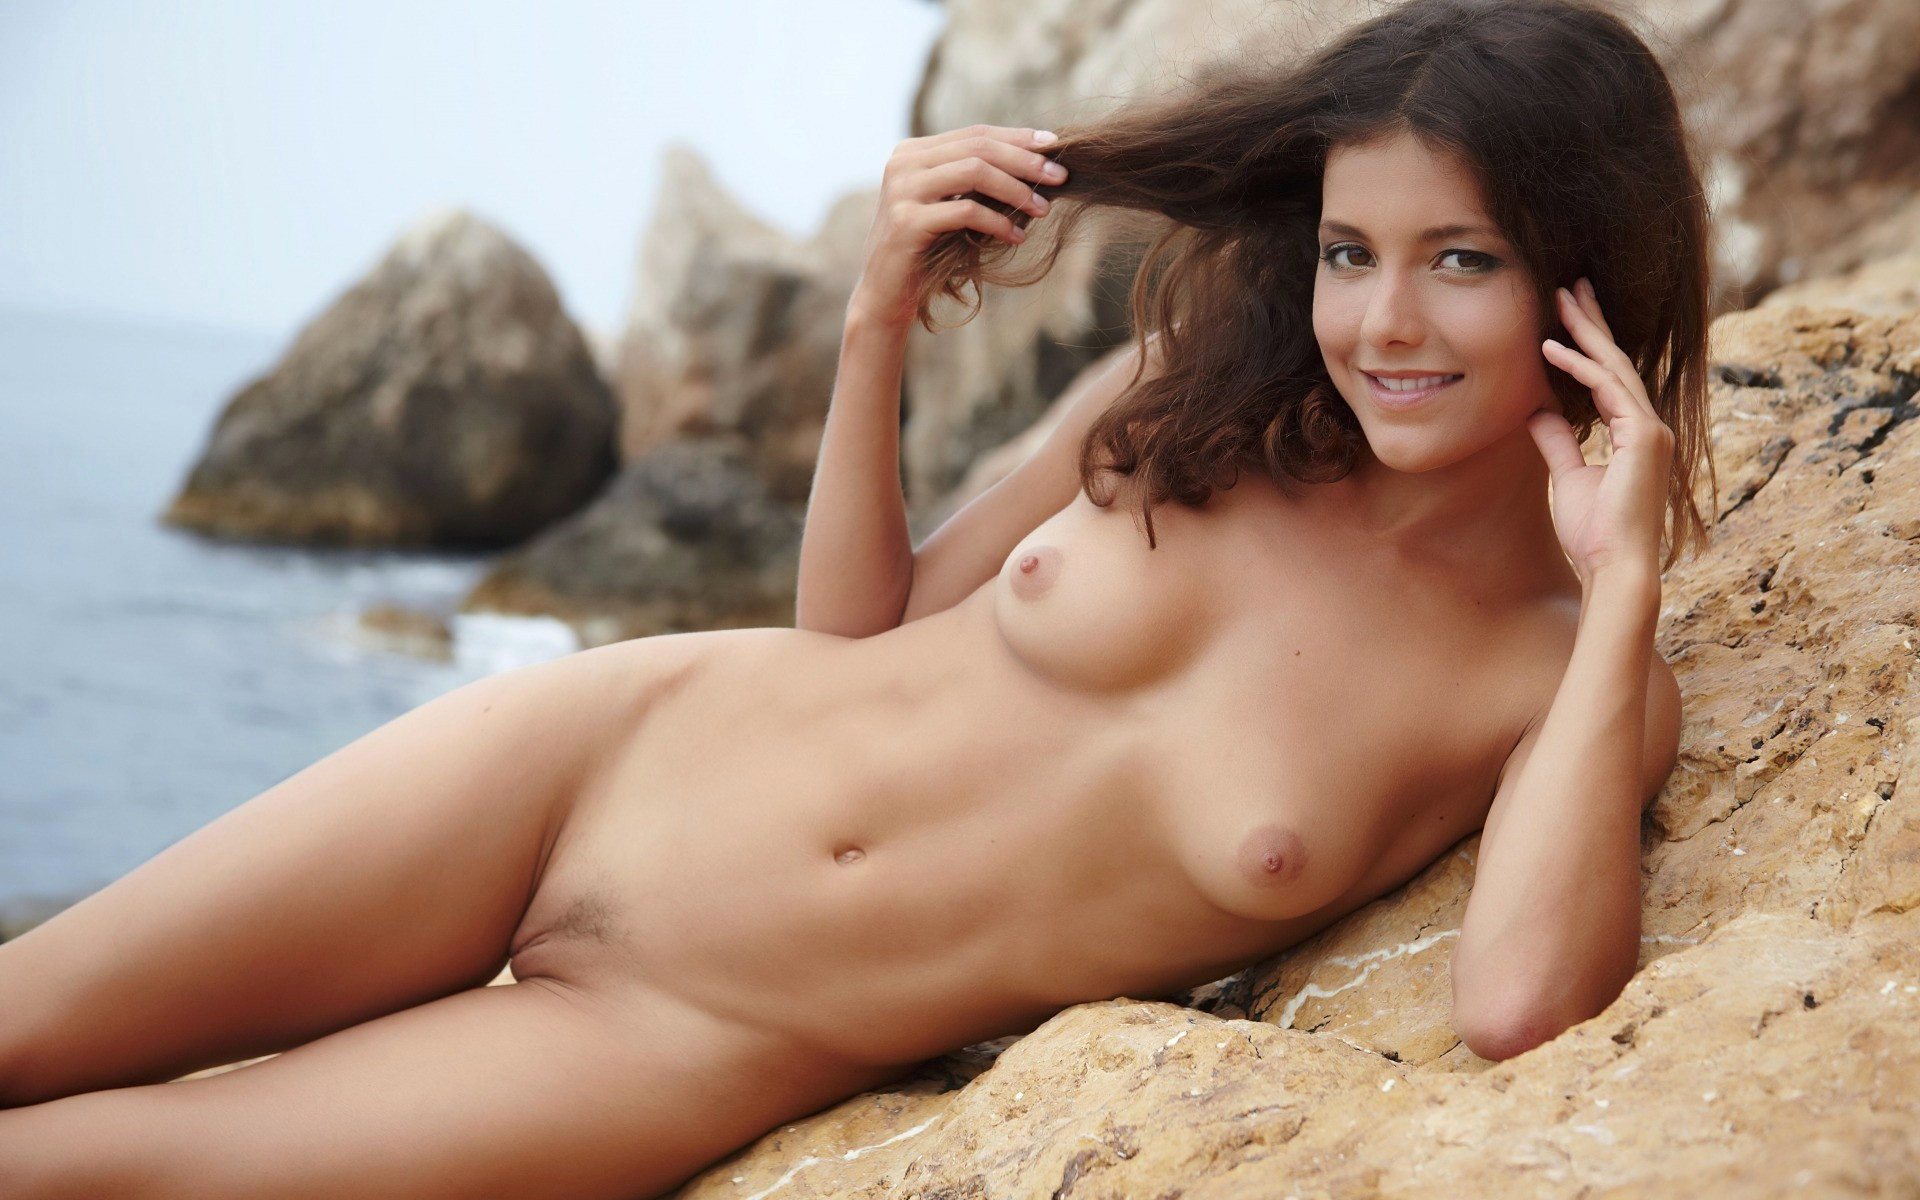 public-young-french-girls-naked-picutres-sex-viva